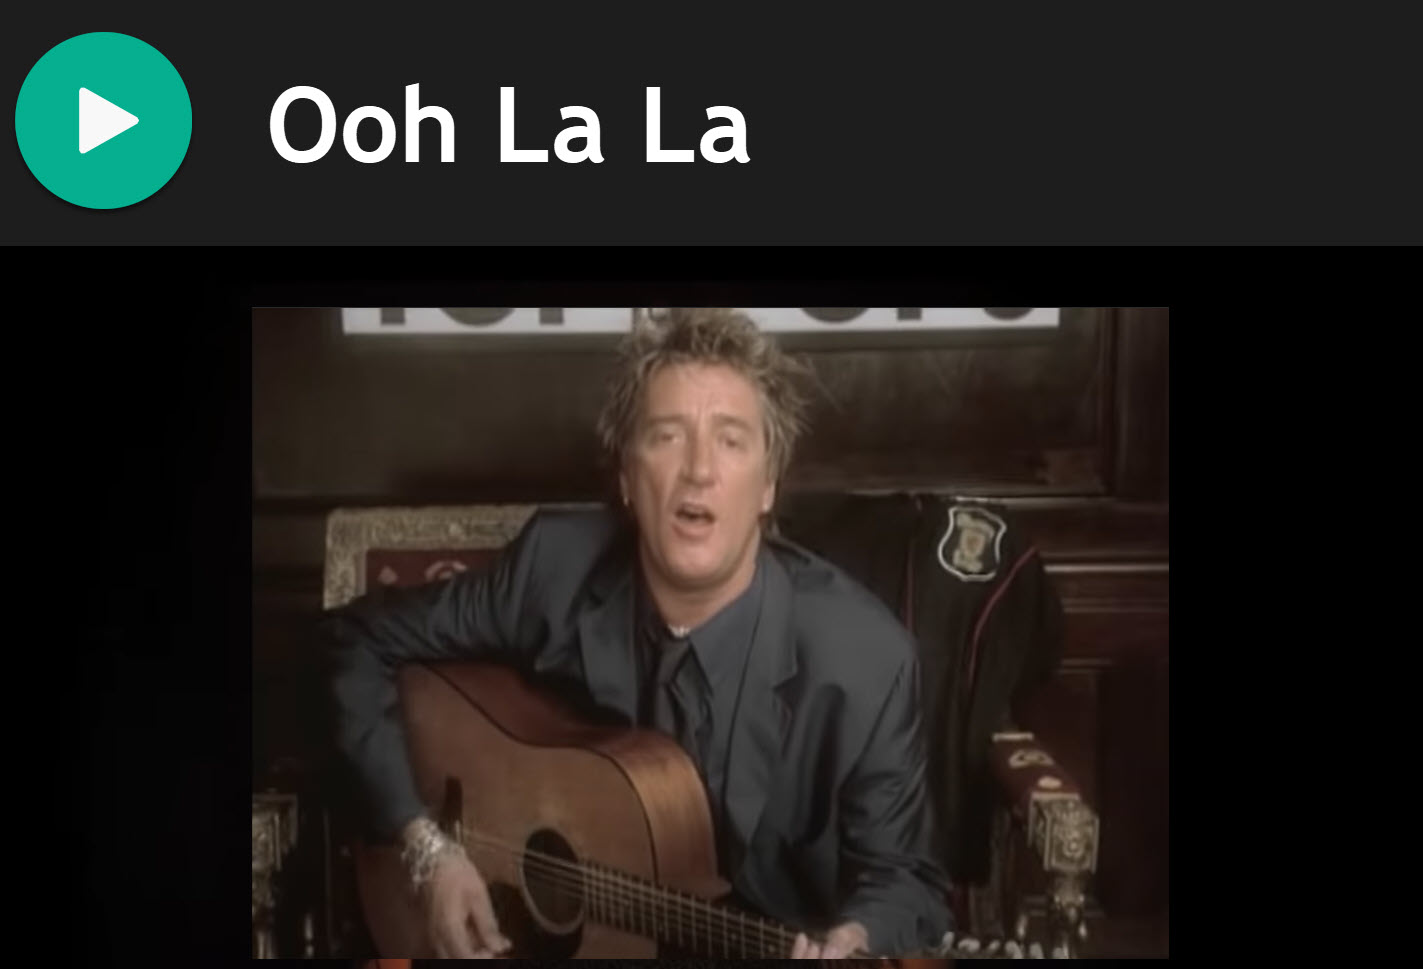 Ooh La La by Rod Stewart for Practise Chanter